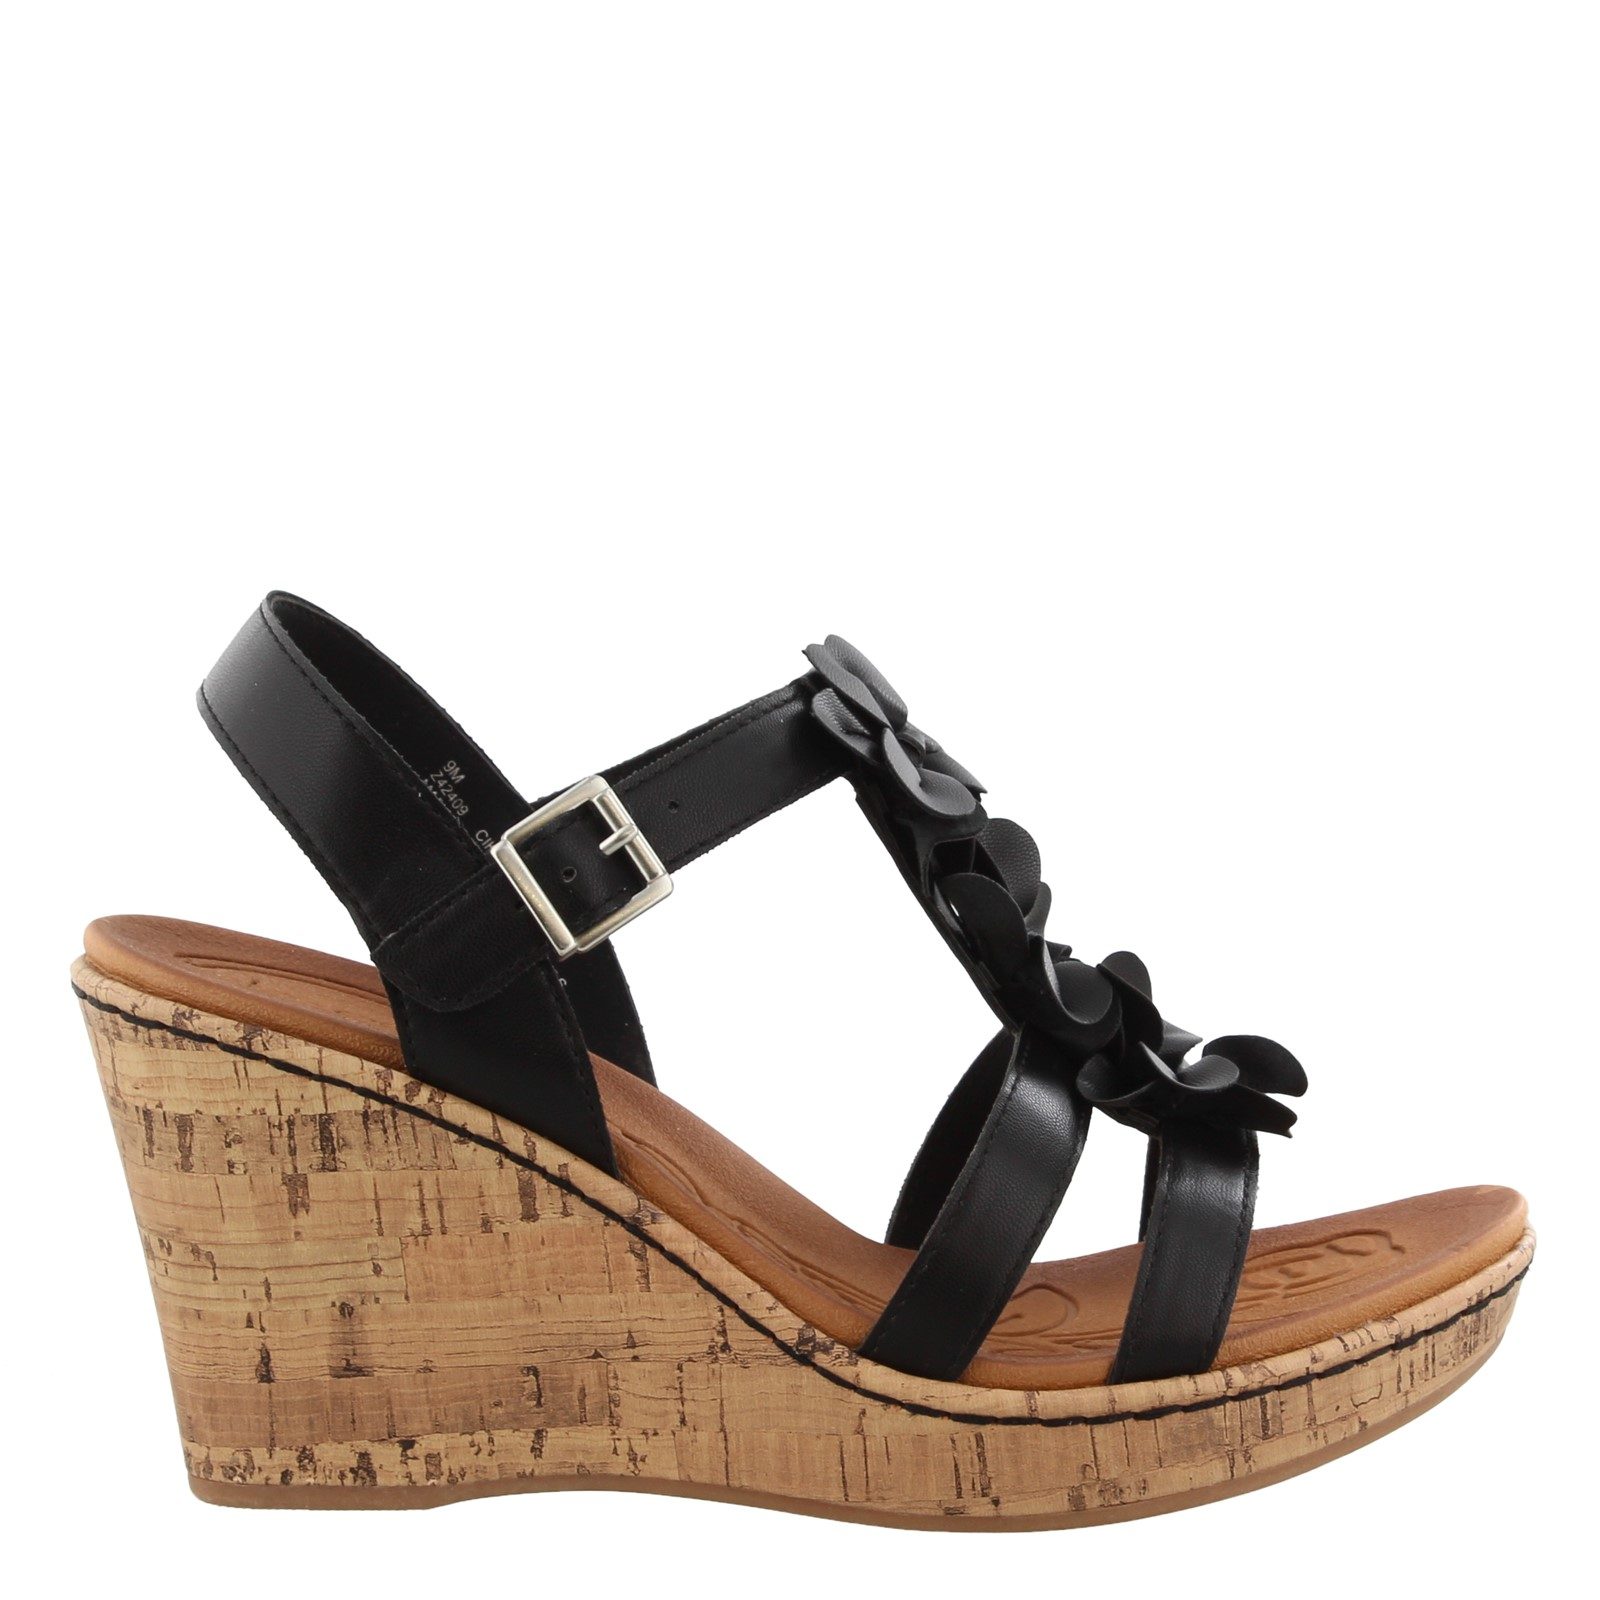 Women's B.O.C, Patsy Wedge Sandal